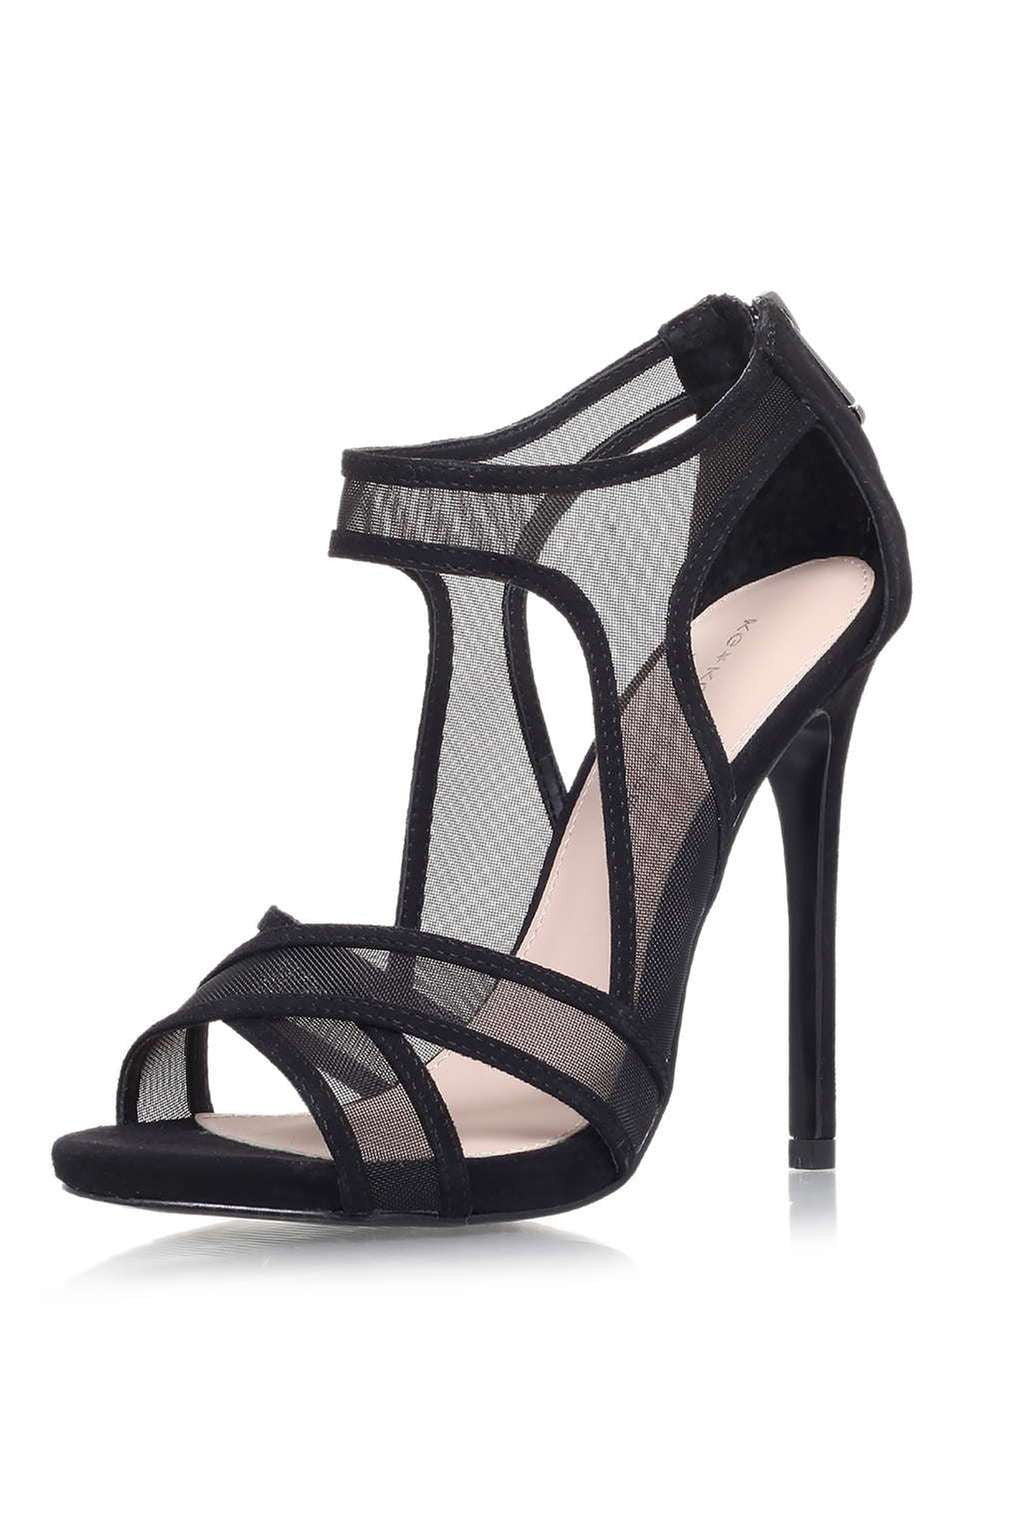 TopShop Black High Heel Sandals by KG Kurt Geiger